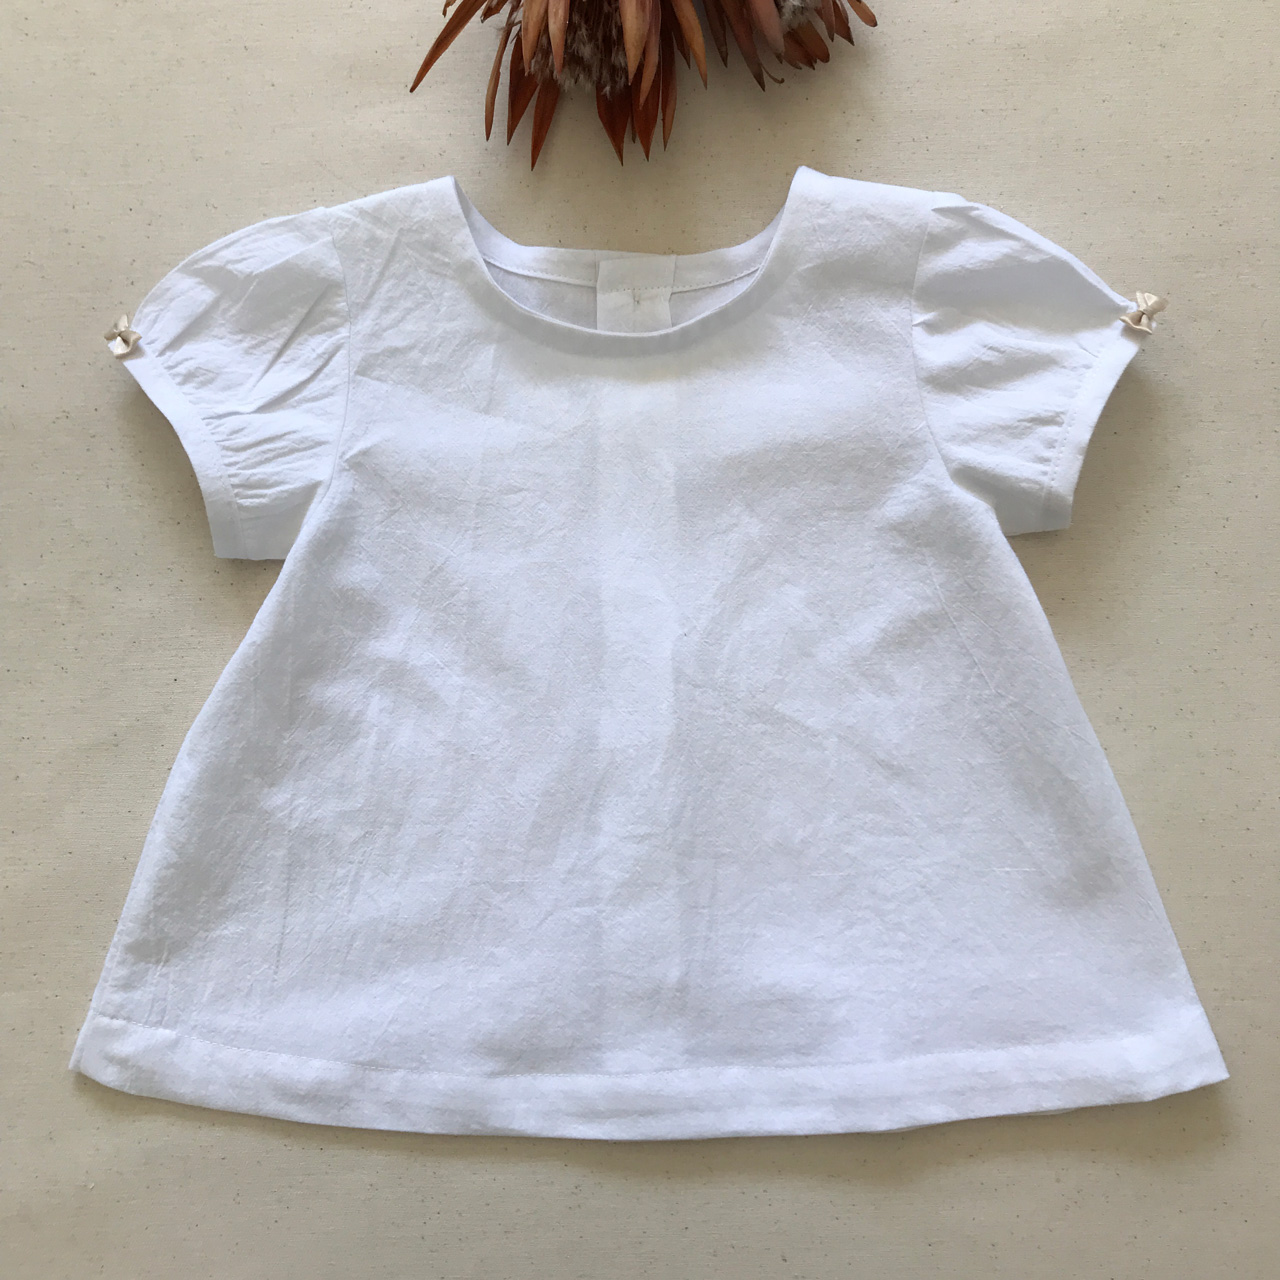 Beautiful cotton blouse, so simple yet so elegant! A great summer outfit.